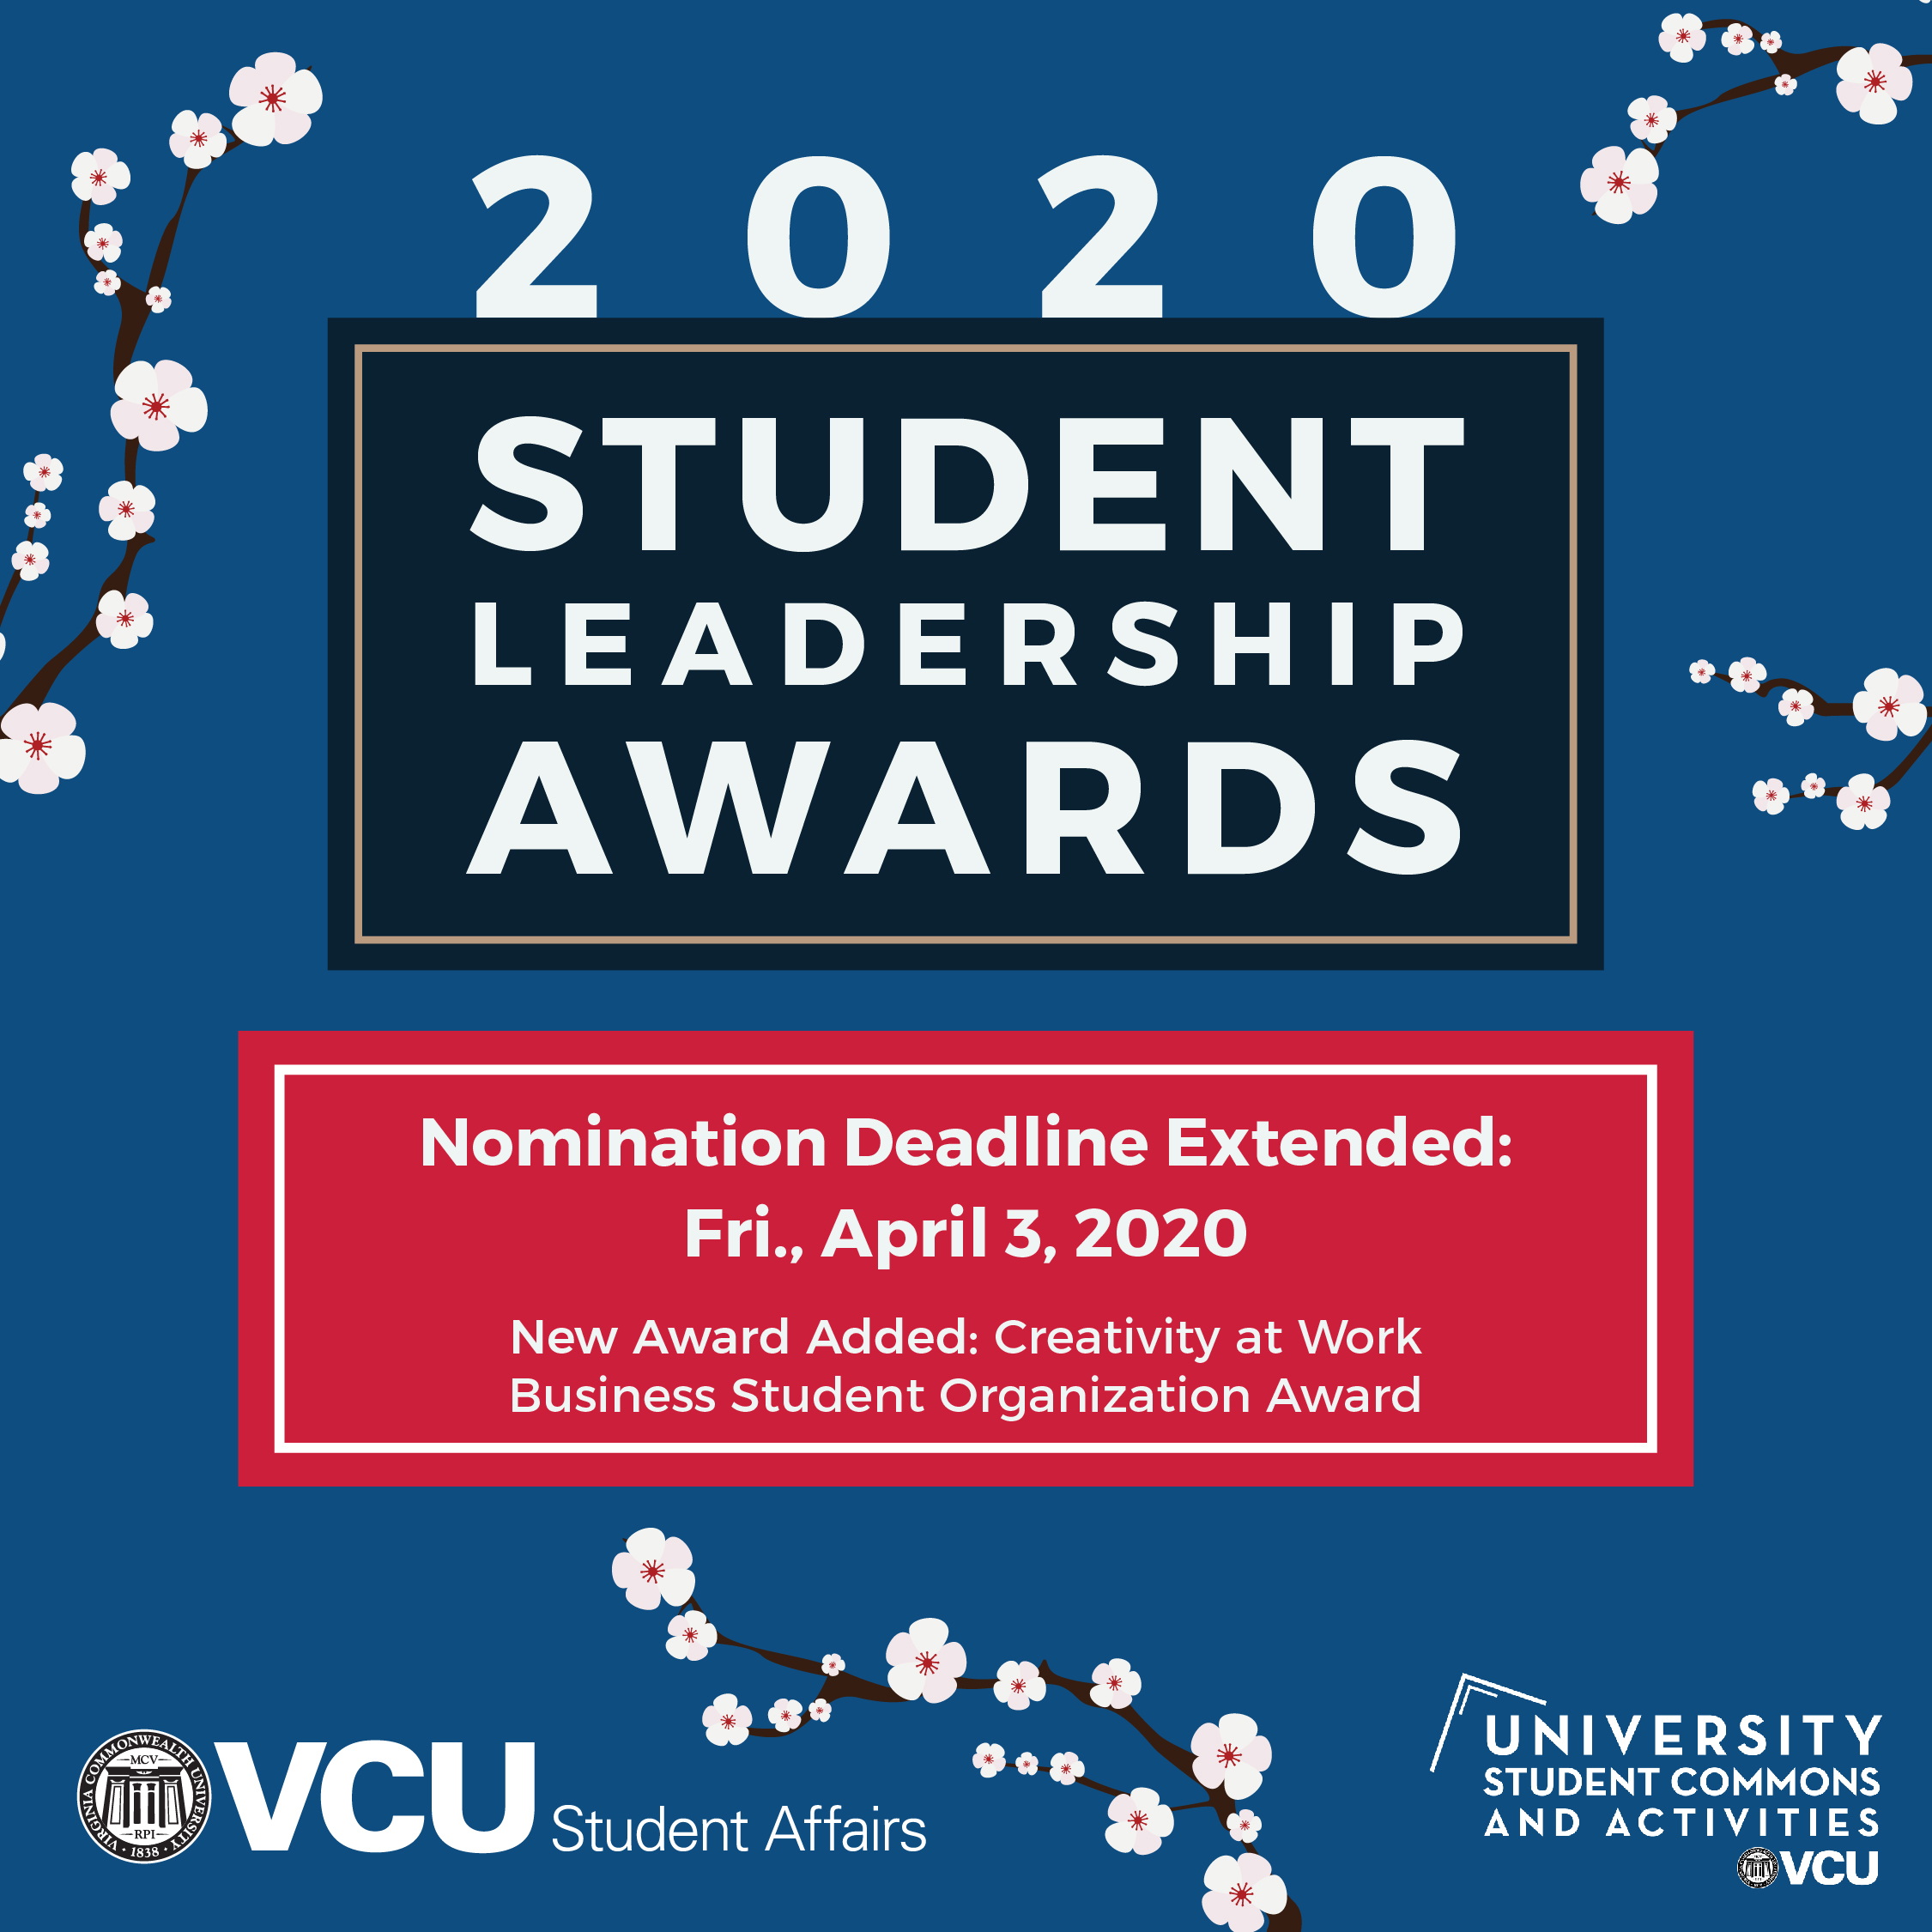 2020 Student Leadership Awards Nominiation Deadline Extended to April 3